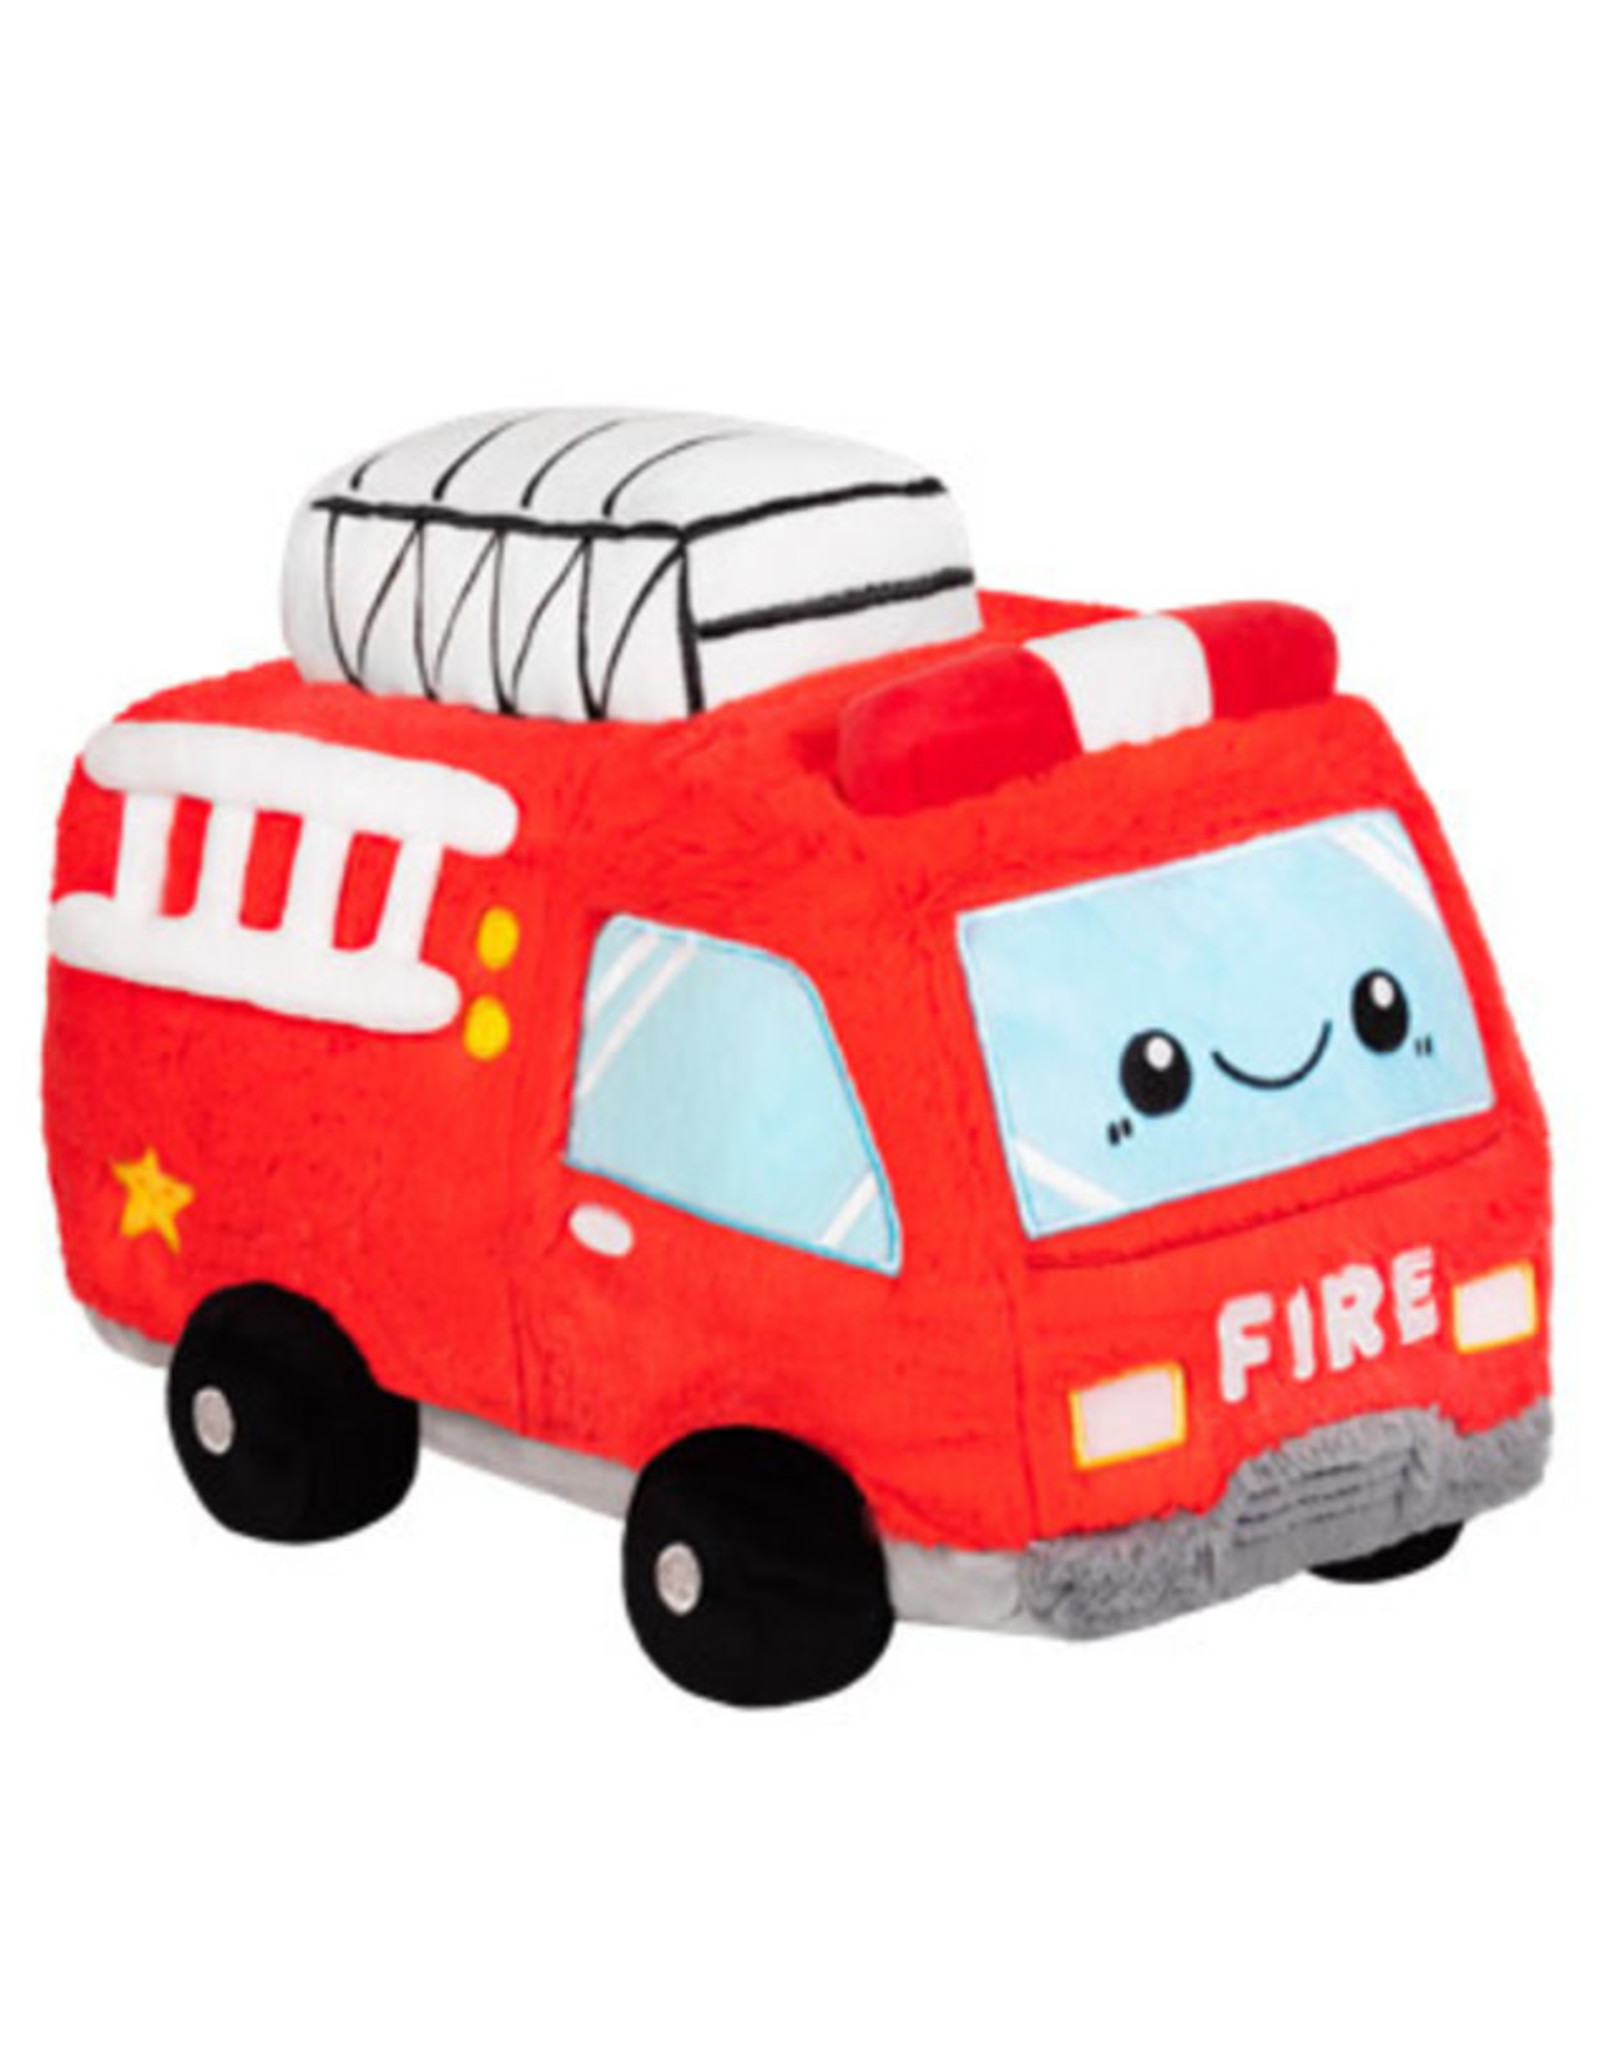 Squishable Squishable Go! Fire Truck